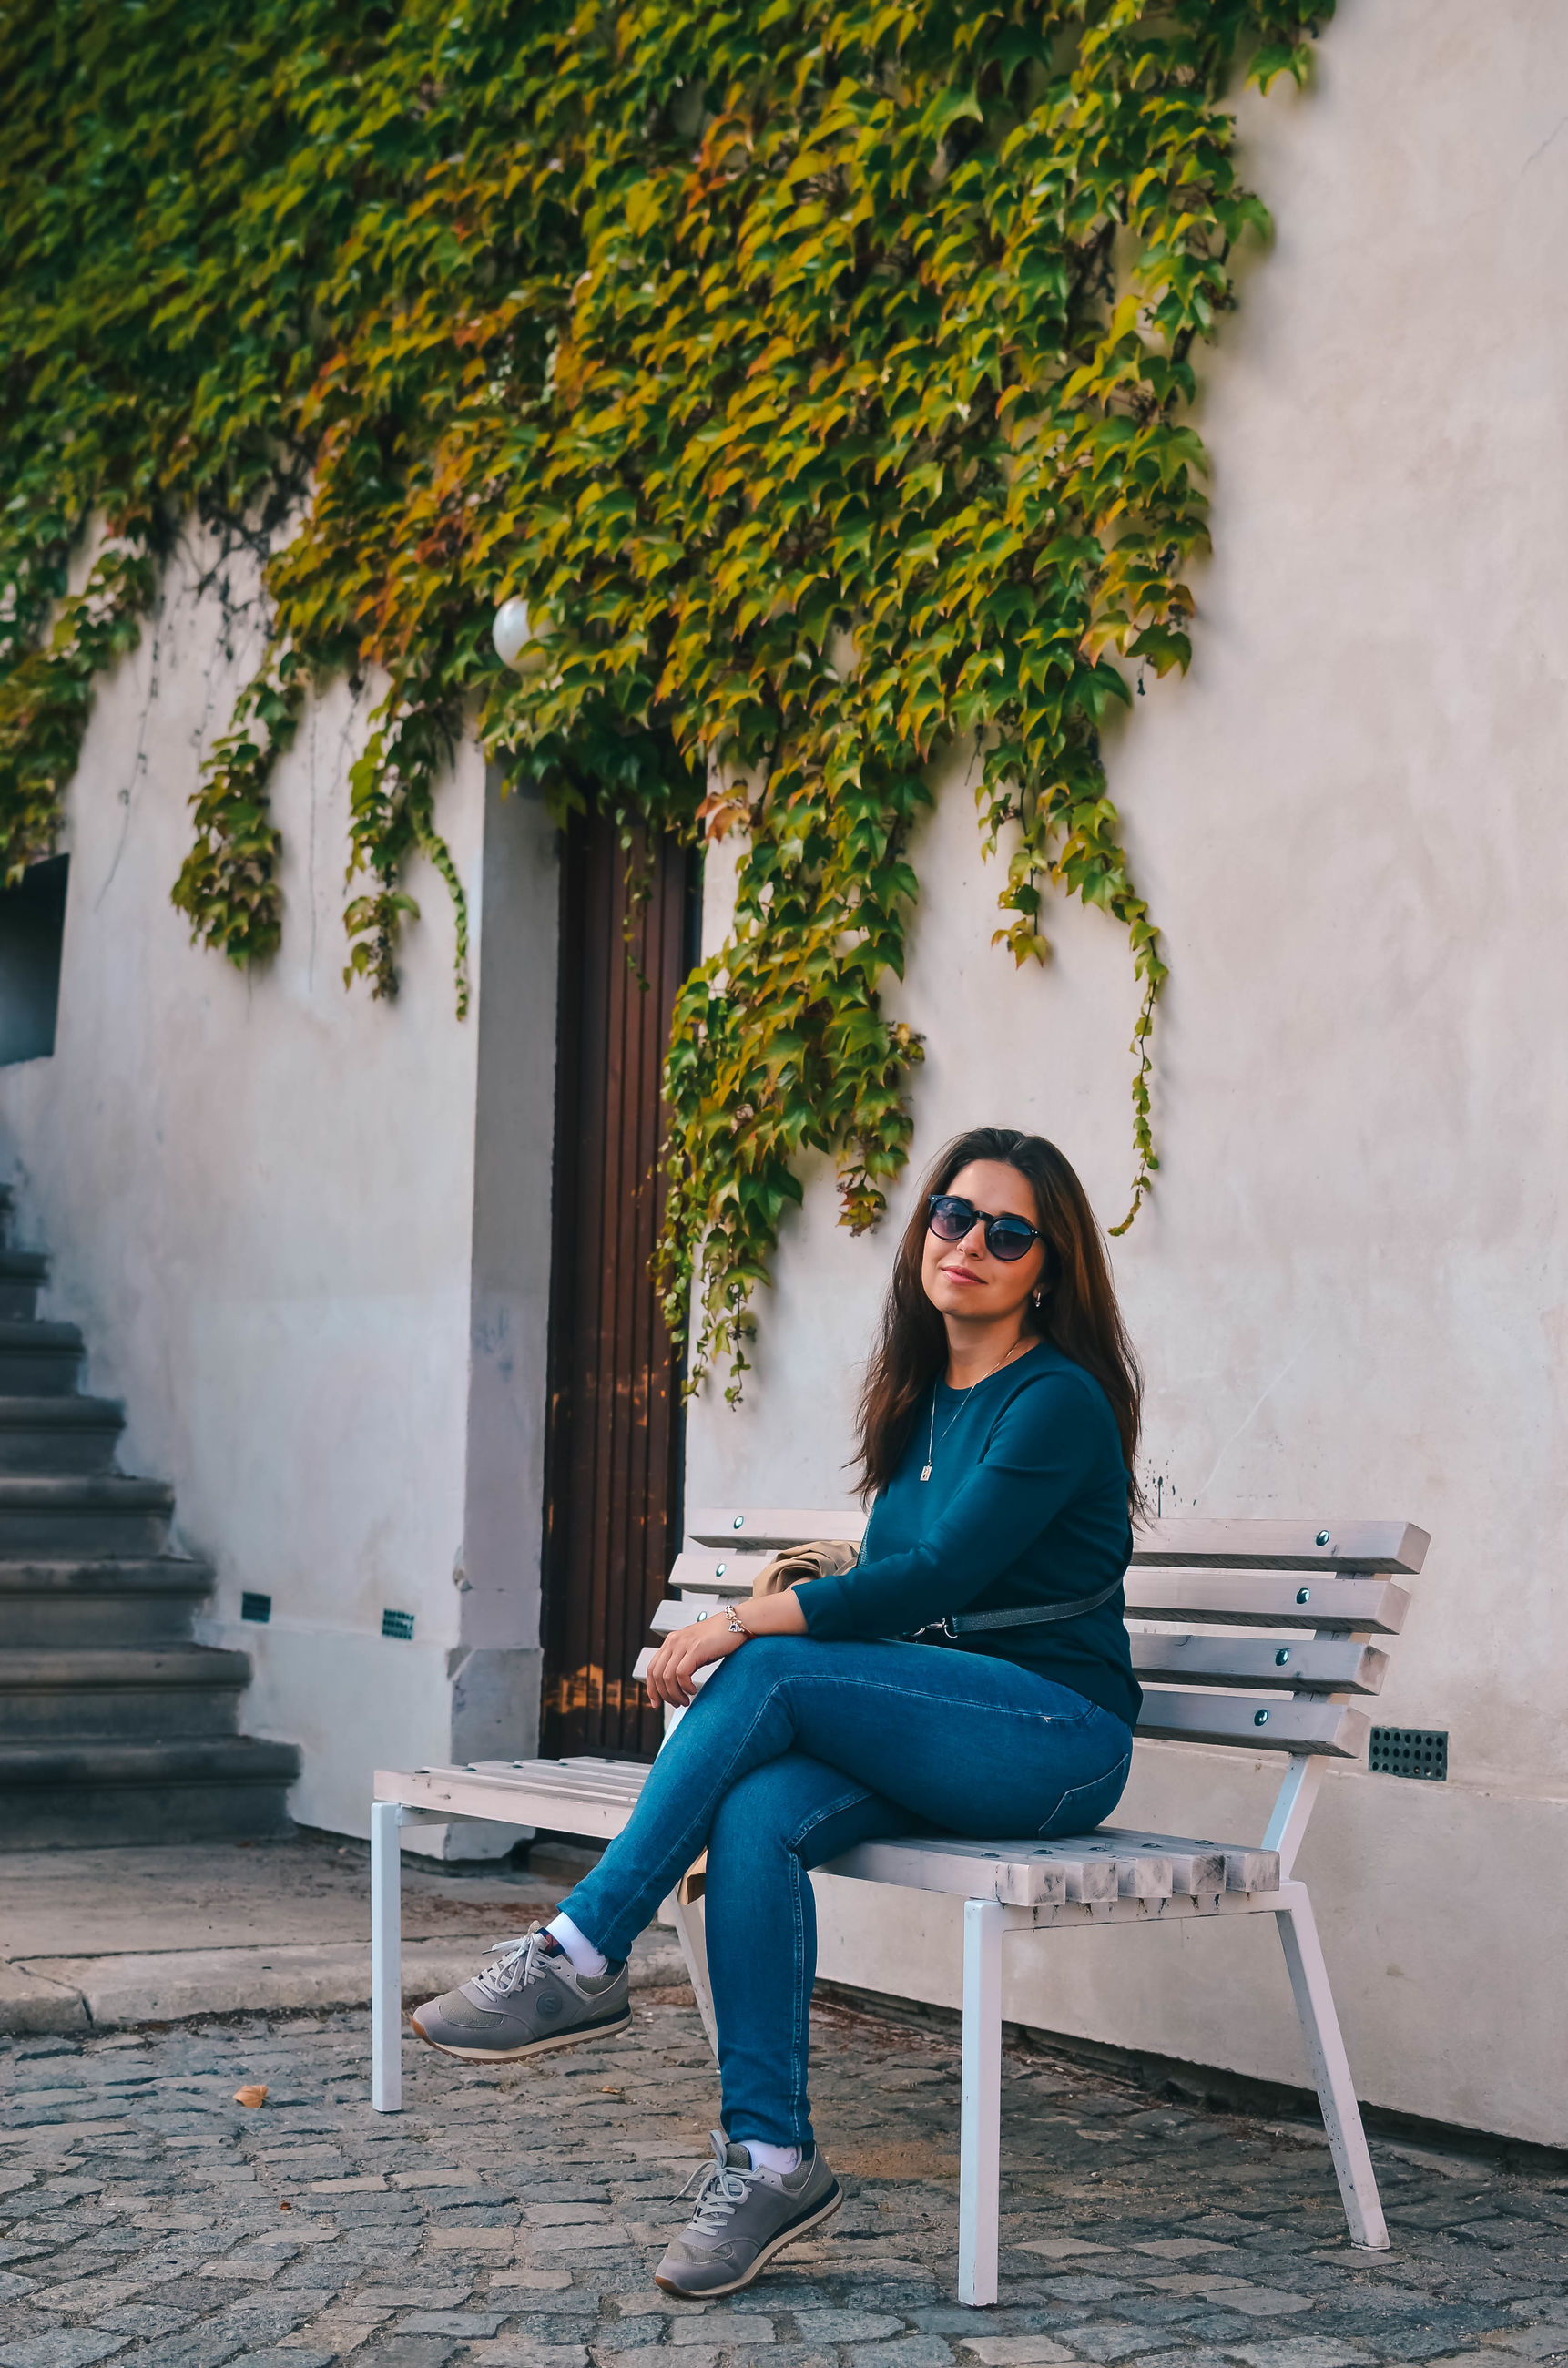 sitting, full length, one person, young adult, real people, casual clothing, young women, leisure activity, lifestyles, seat, beauty, smiling, looking at camera, long hair, beautiful woman, hairstyle, adult, hair, outdoors